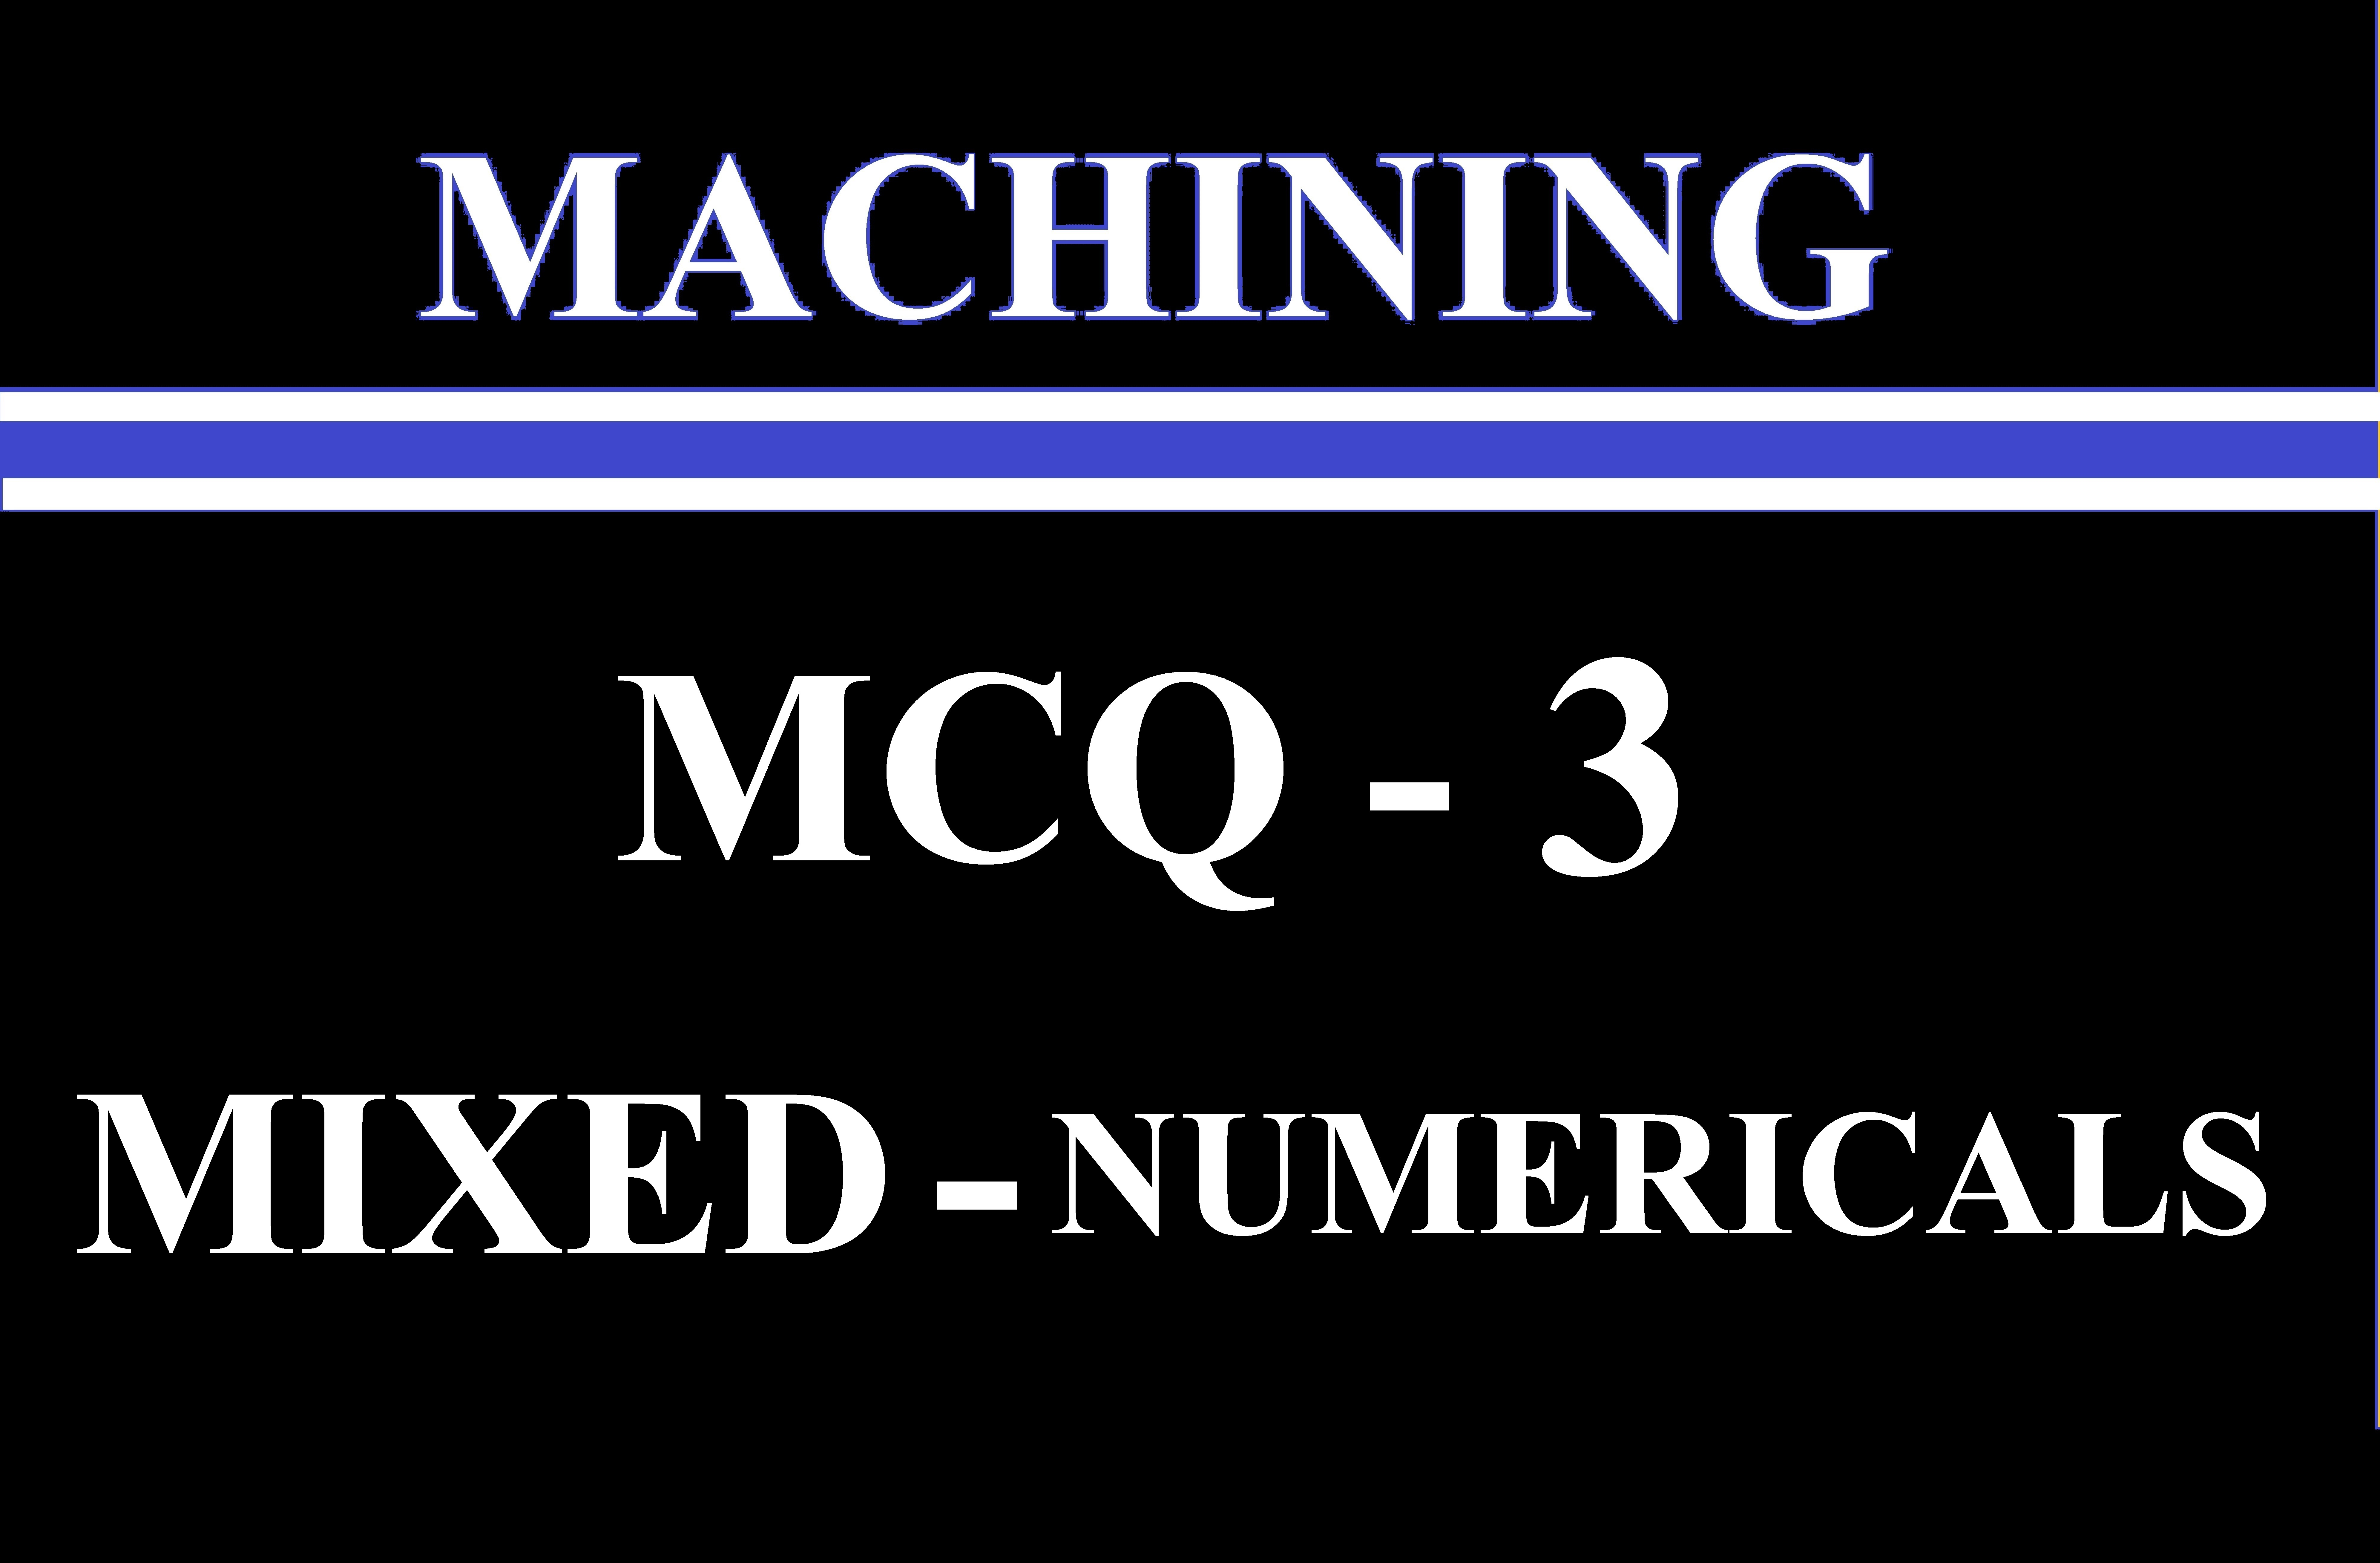 MCQ 3 (Machining) Mixed Numerical session